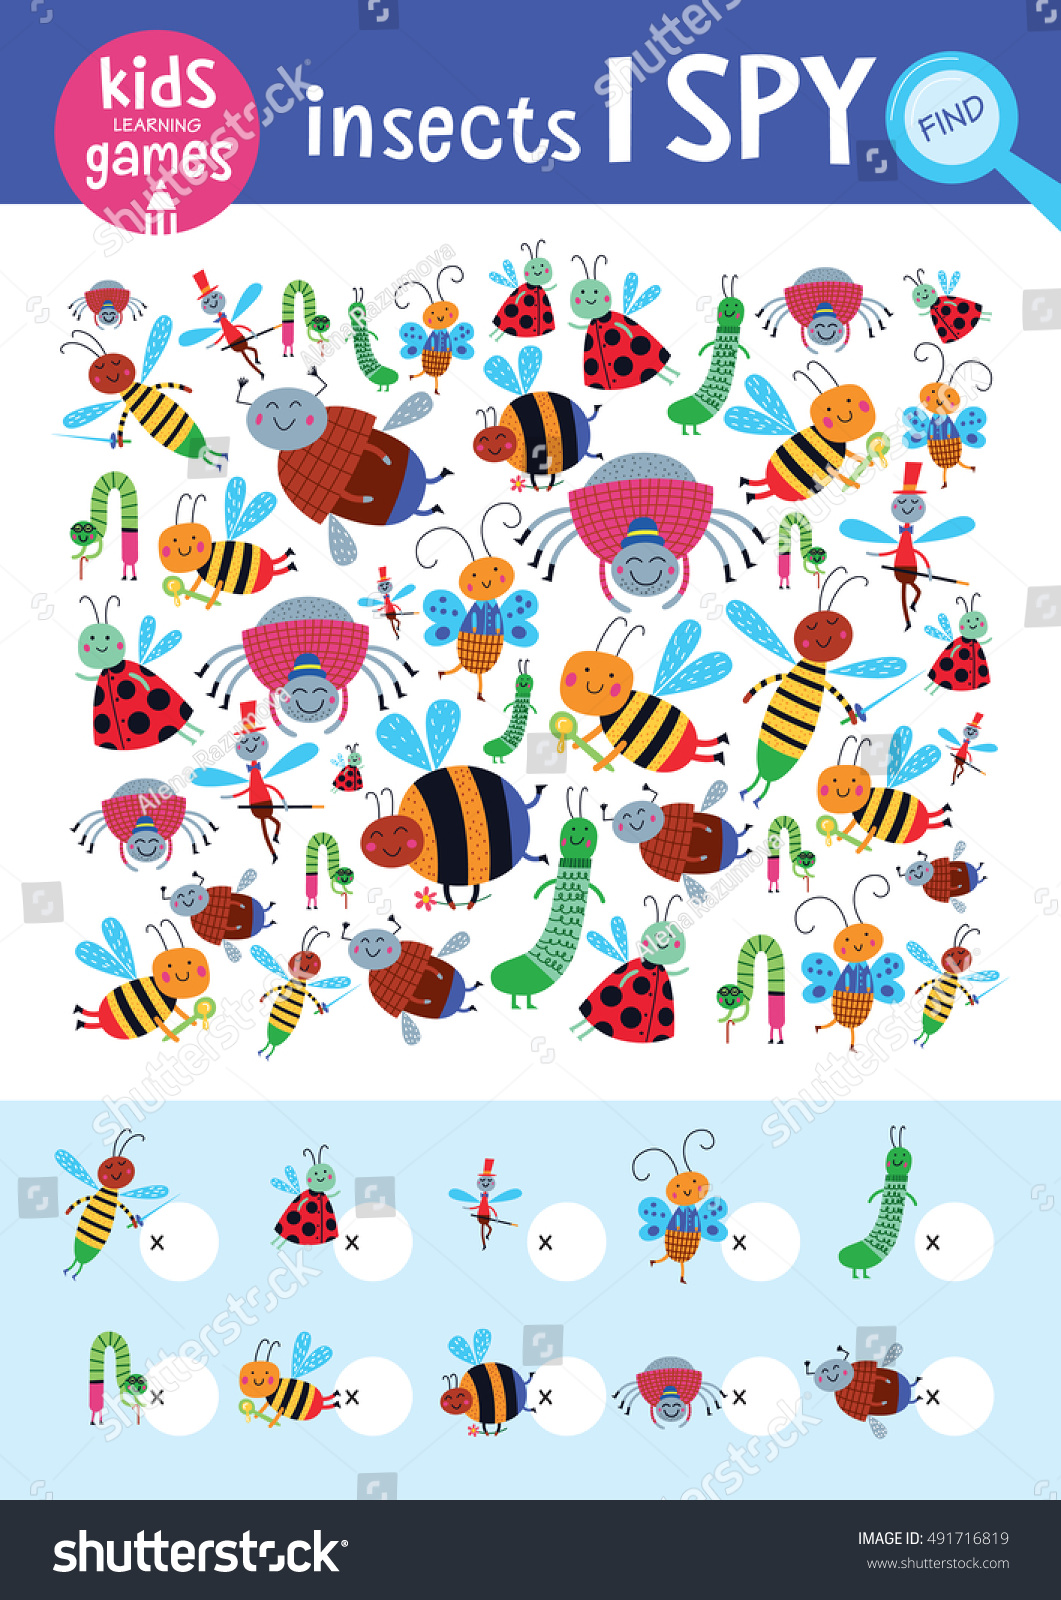 Find the same pictures and count it Kids learning games collection Cute insects